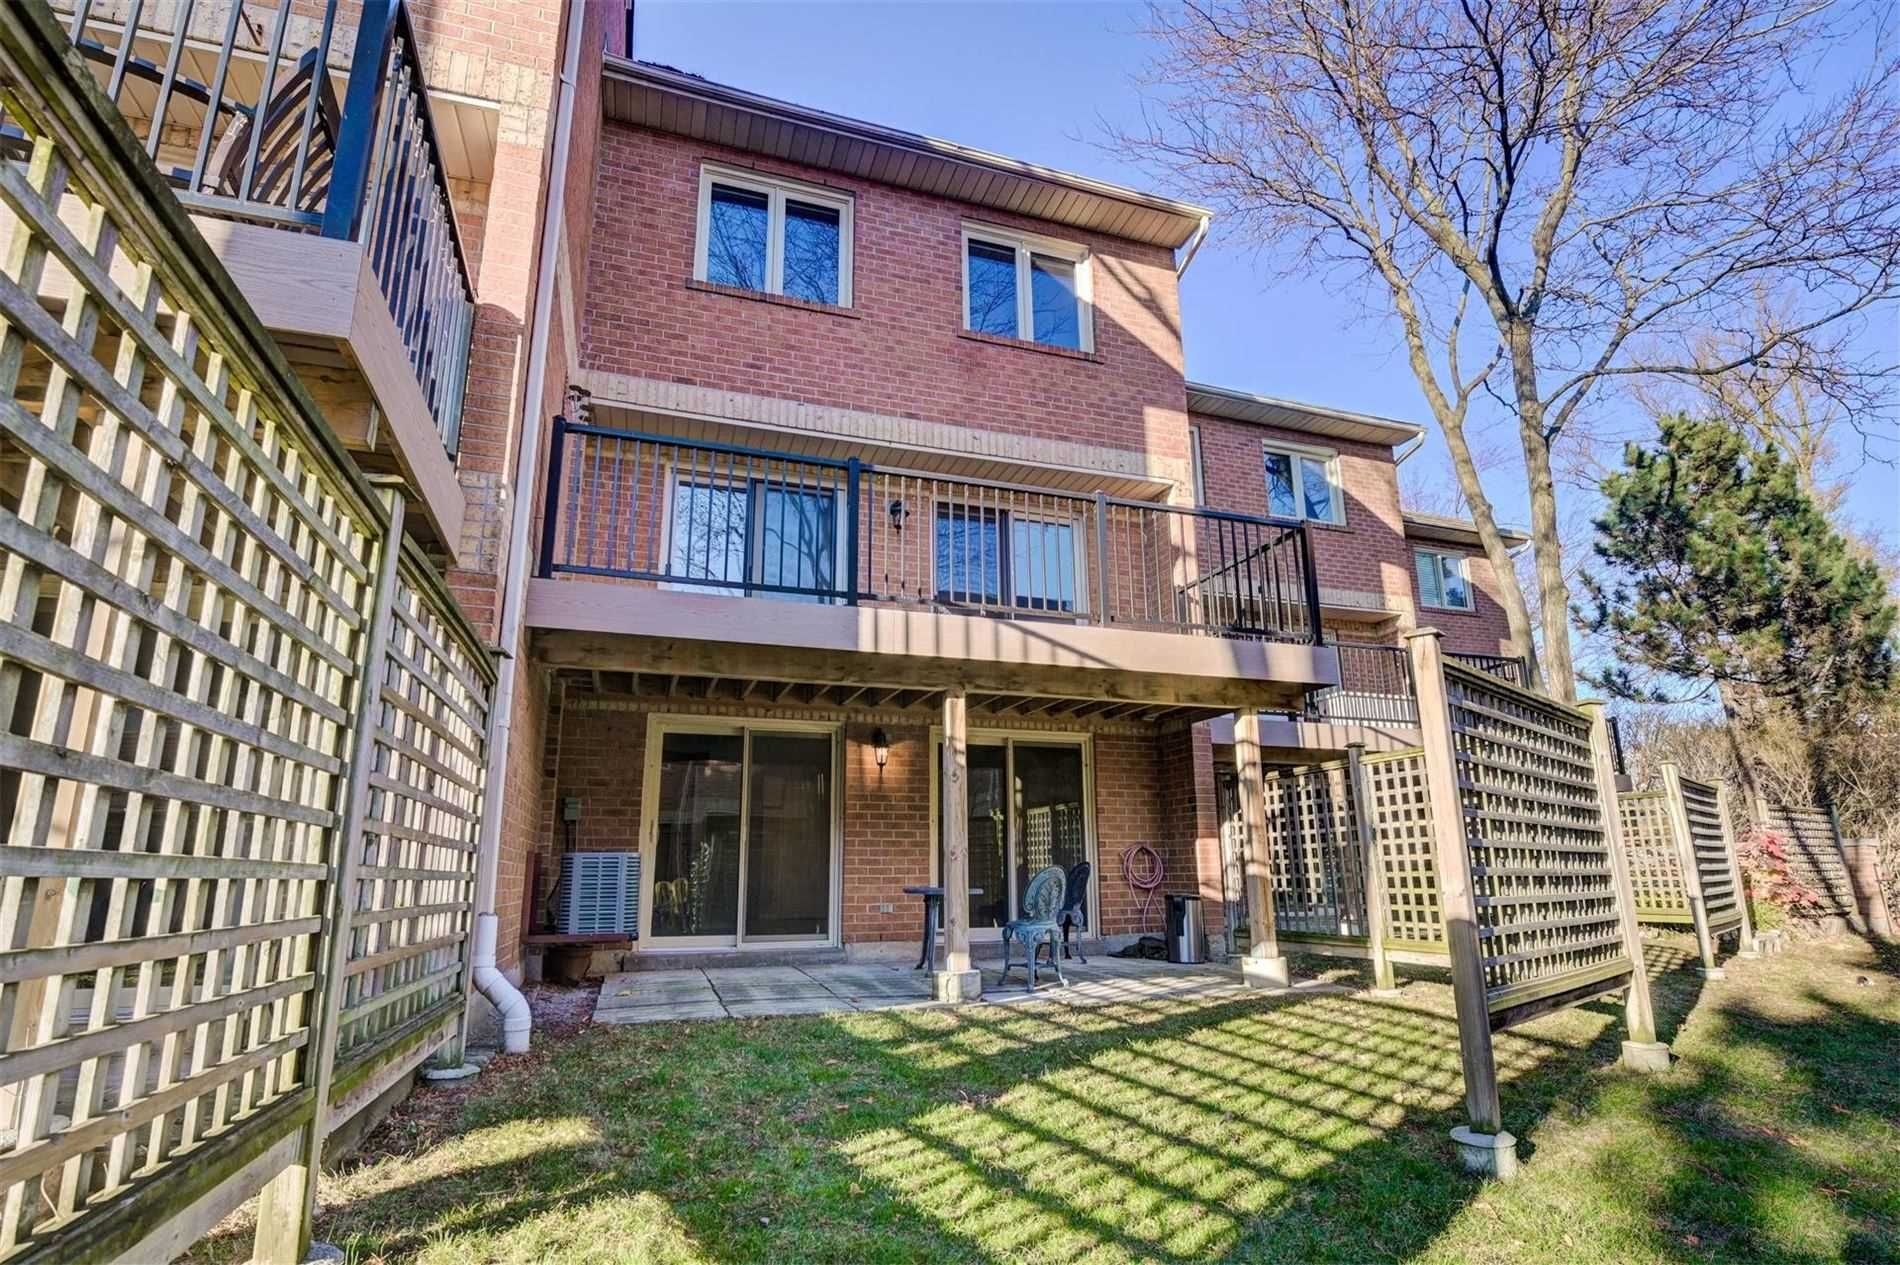 Main Photo: 39 Rodeo Pathway in Toronto: Birchcliffe-Cliffside Condo for lease (Toronto E06)  : MLS®# E4989492